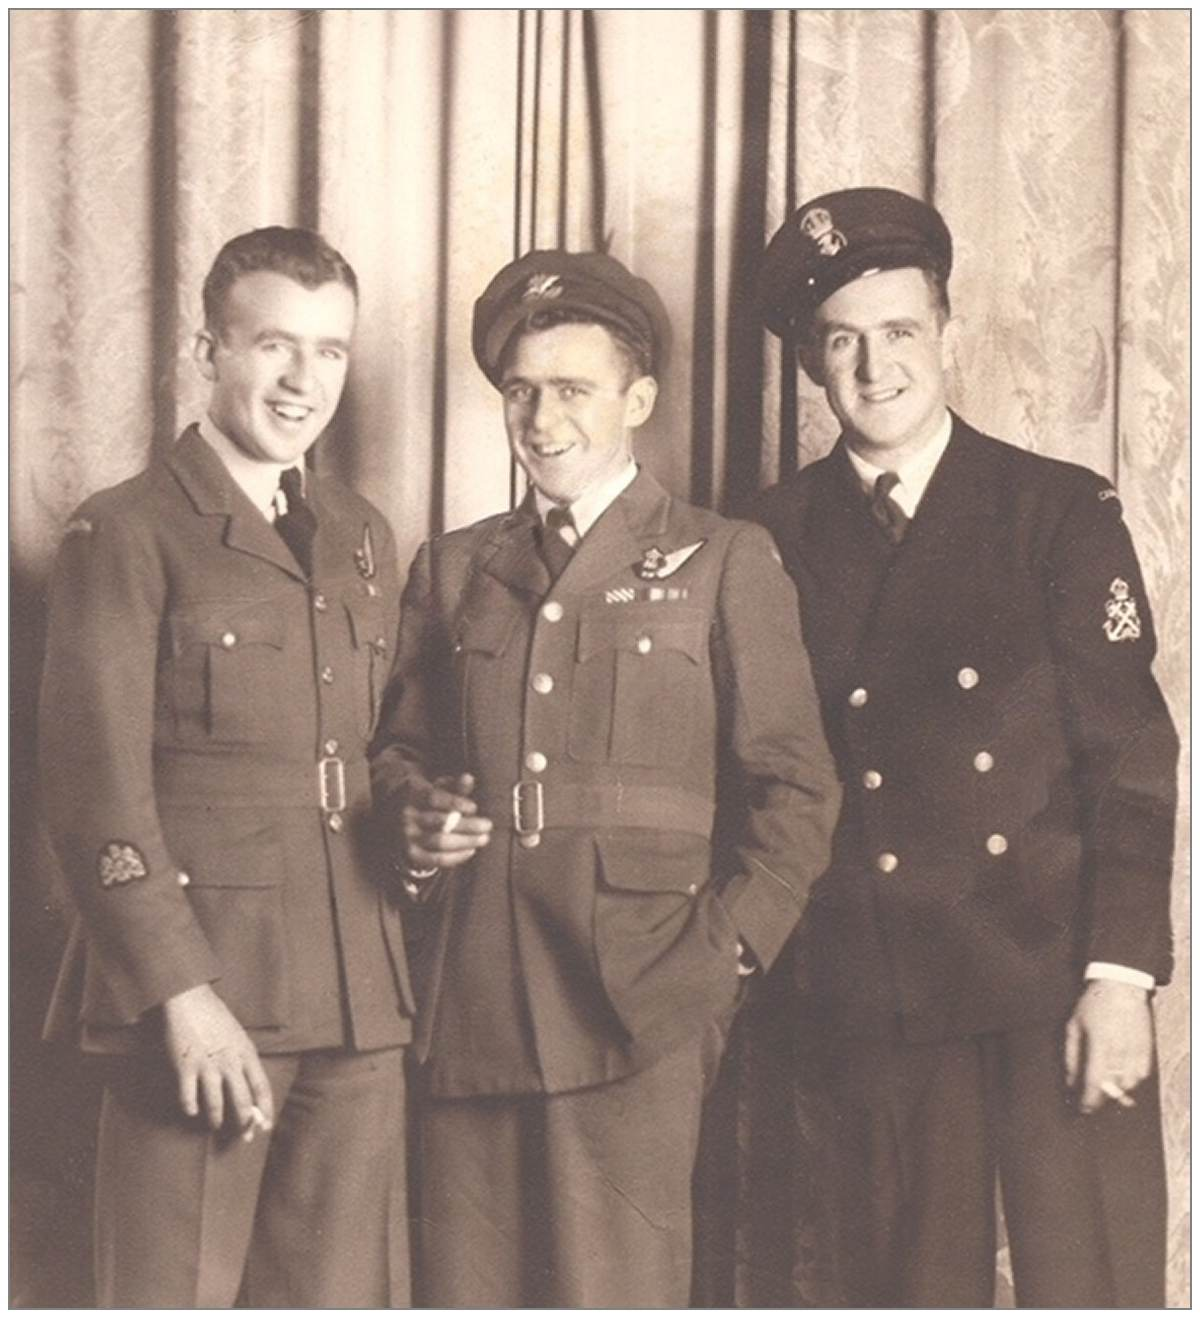 Morrison boys in uniform - photo 002